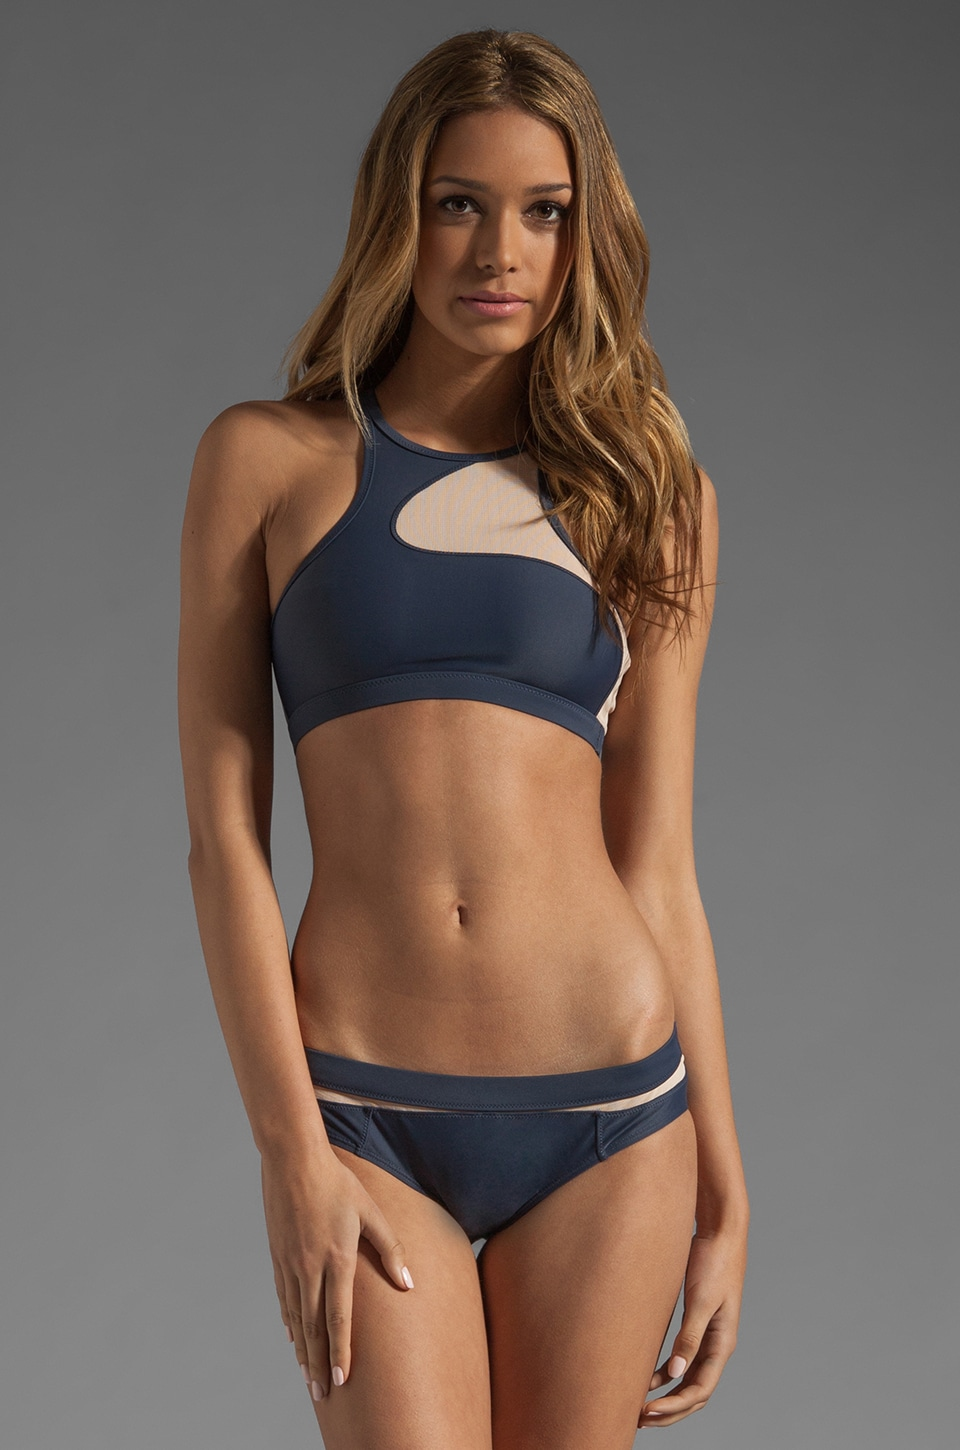 adidas by Stella McCartney Swim Top in Urban Sky/Soft Powder